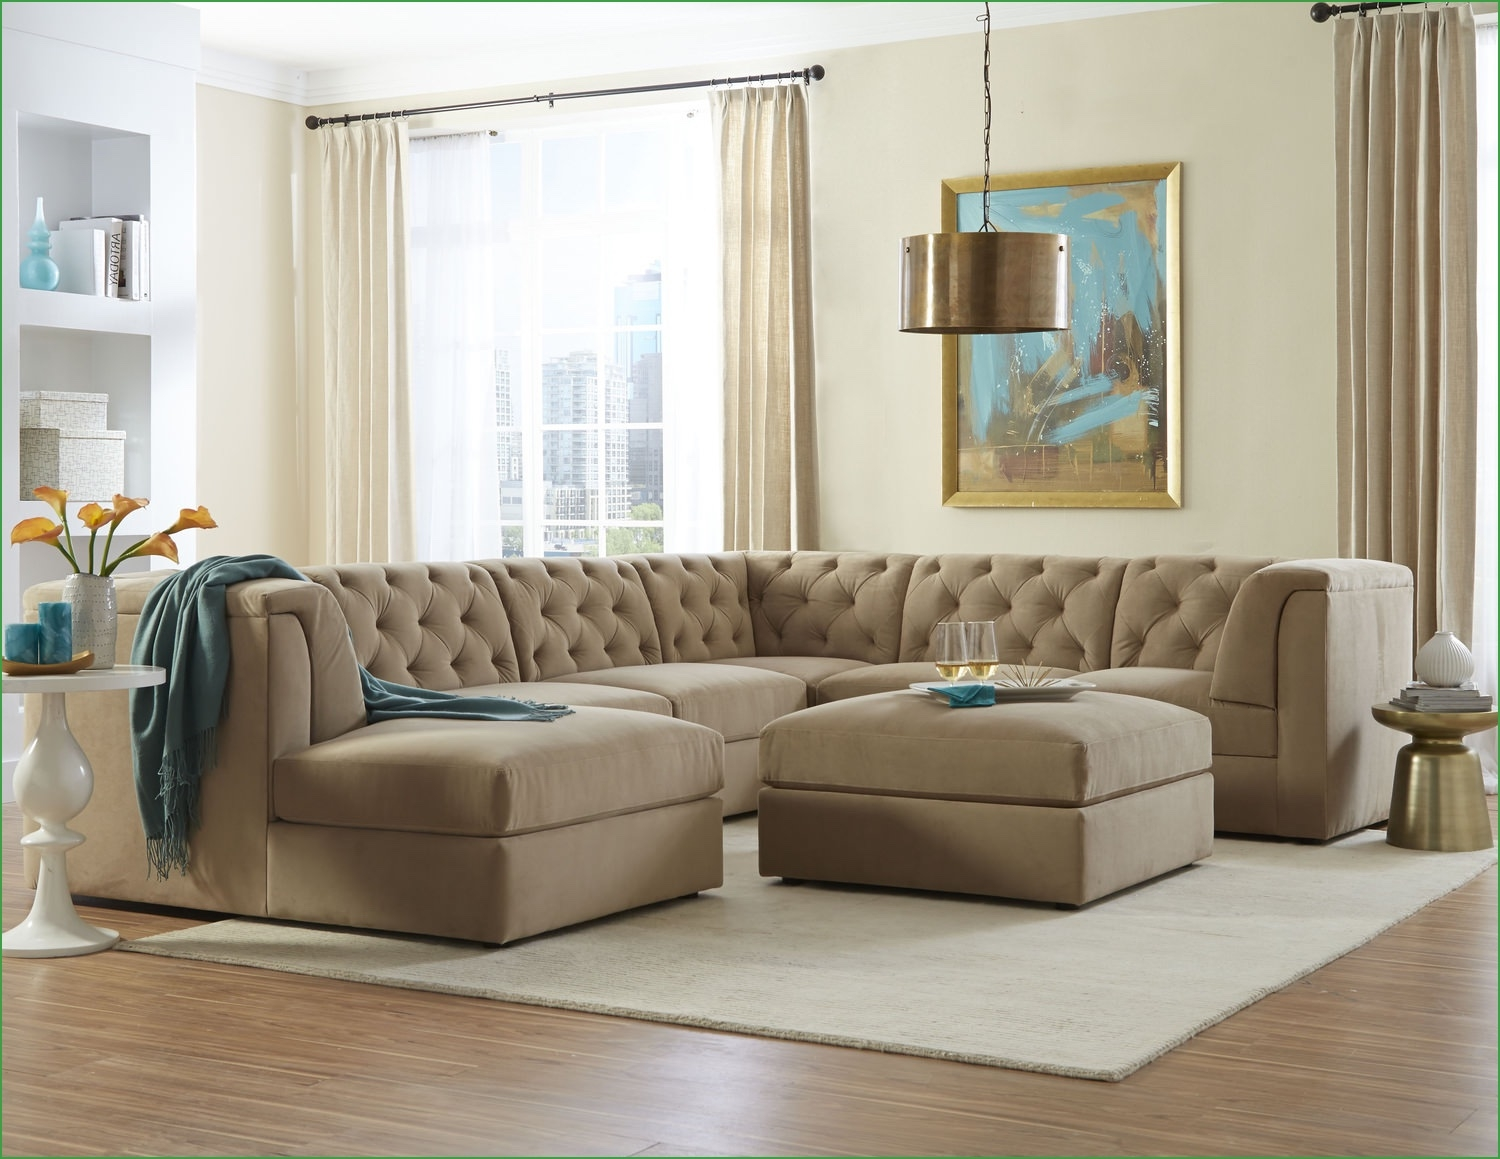 Rambler 6 Piece Modular Sectional 6 Piece Sectional 6 Piece With 6 Piece Modular Sectional Sofa (Image 11 of 15)